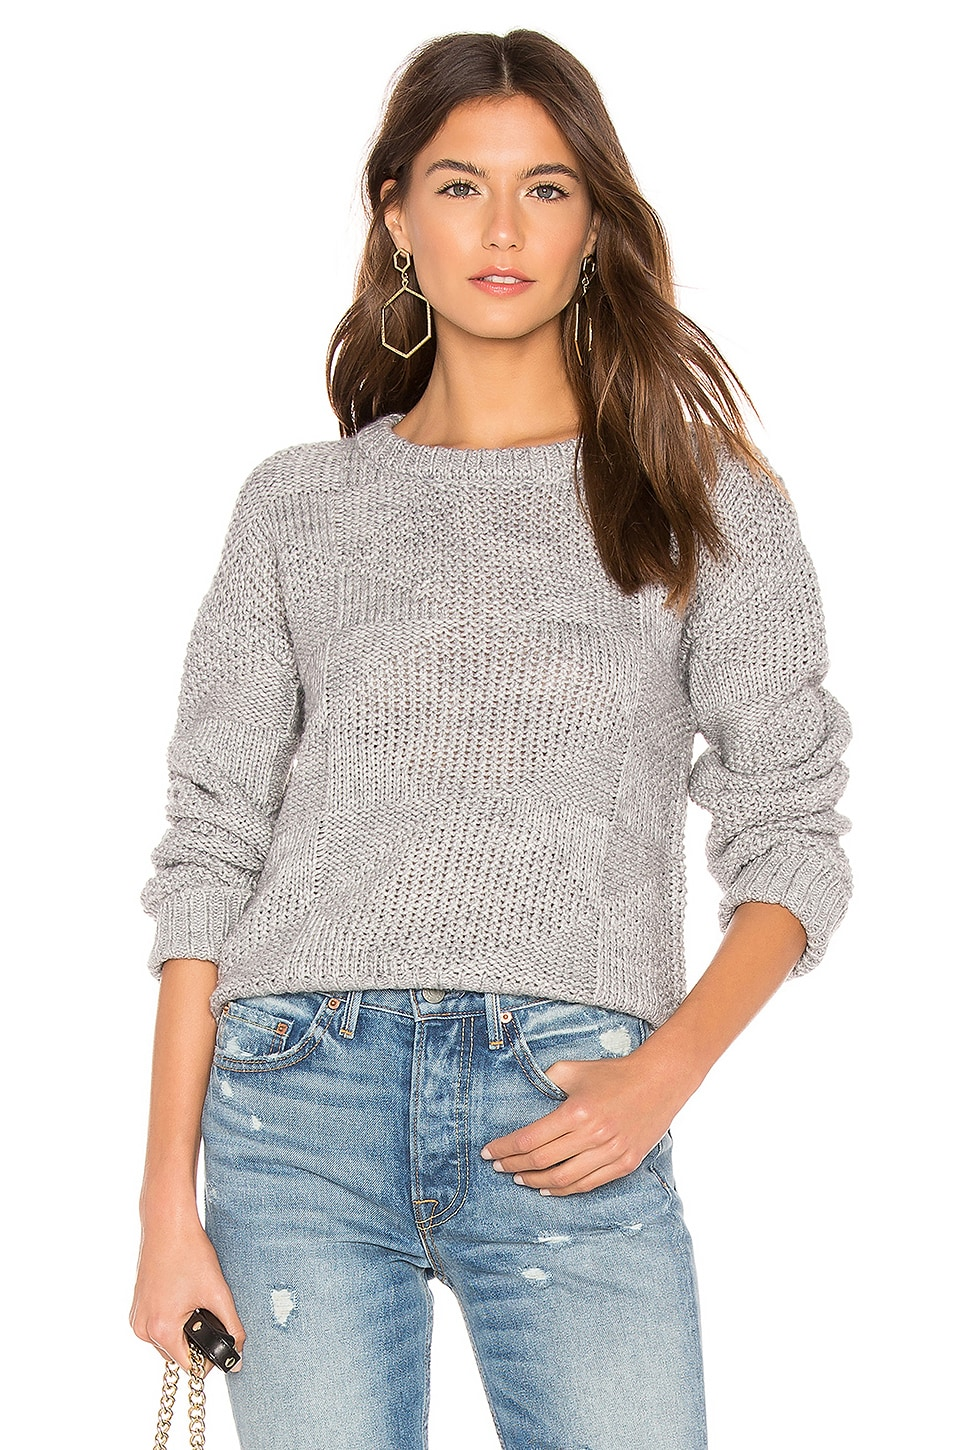 CALLAHAN Melle Crew Neck Sweater in Gray